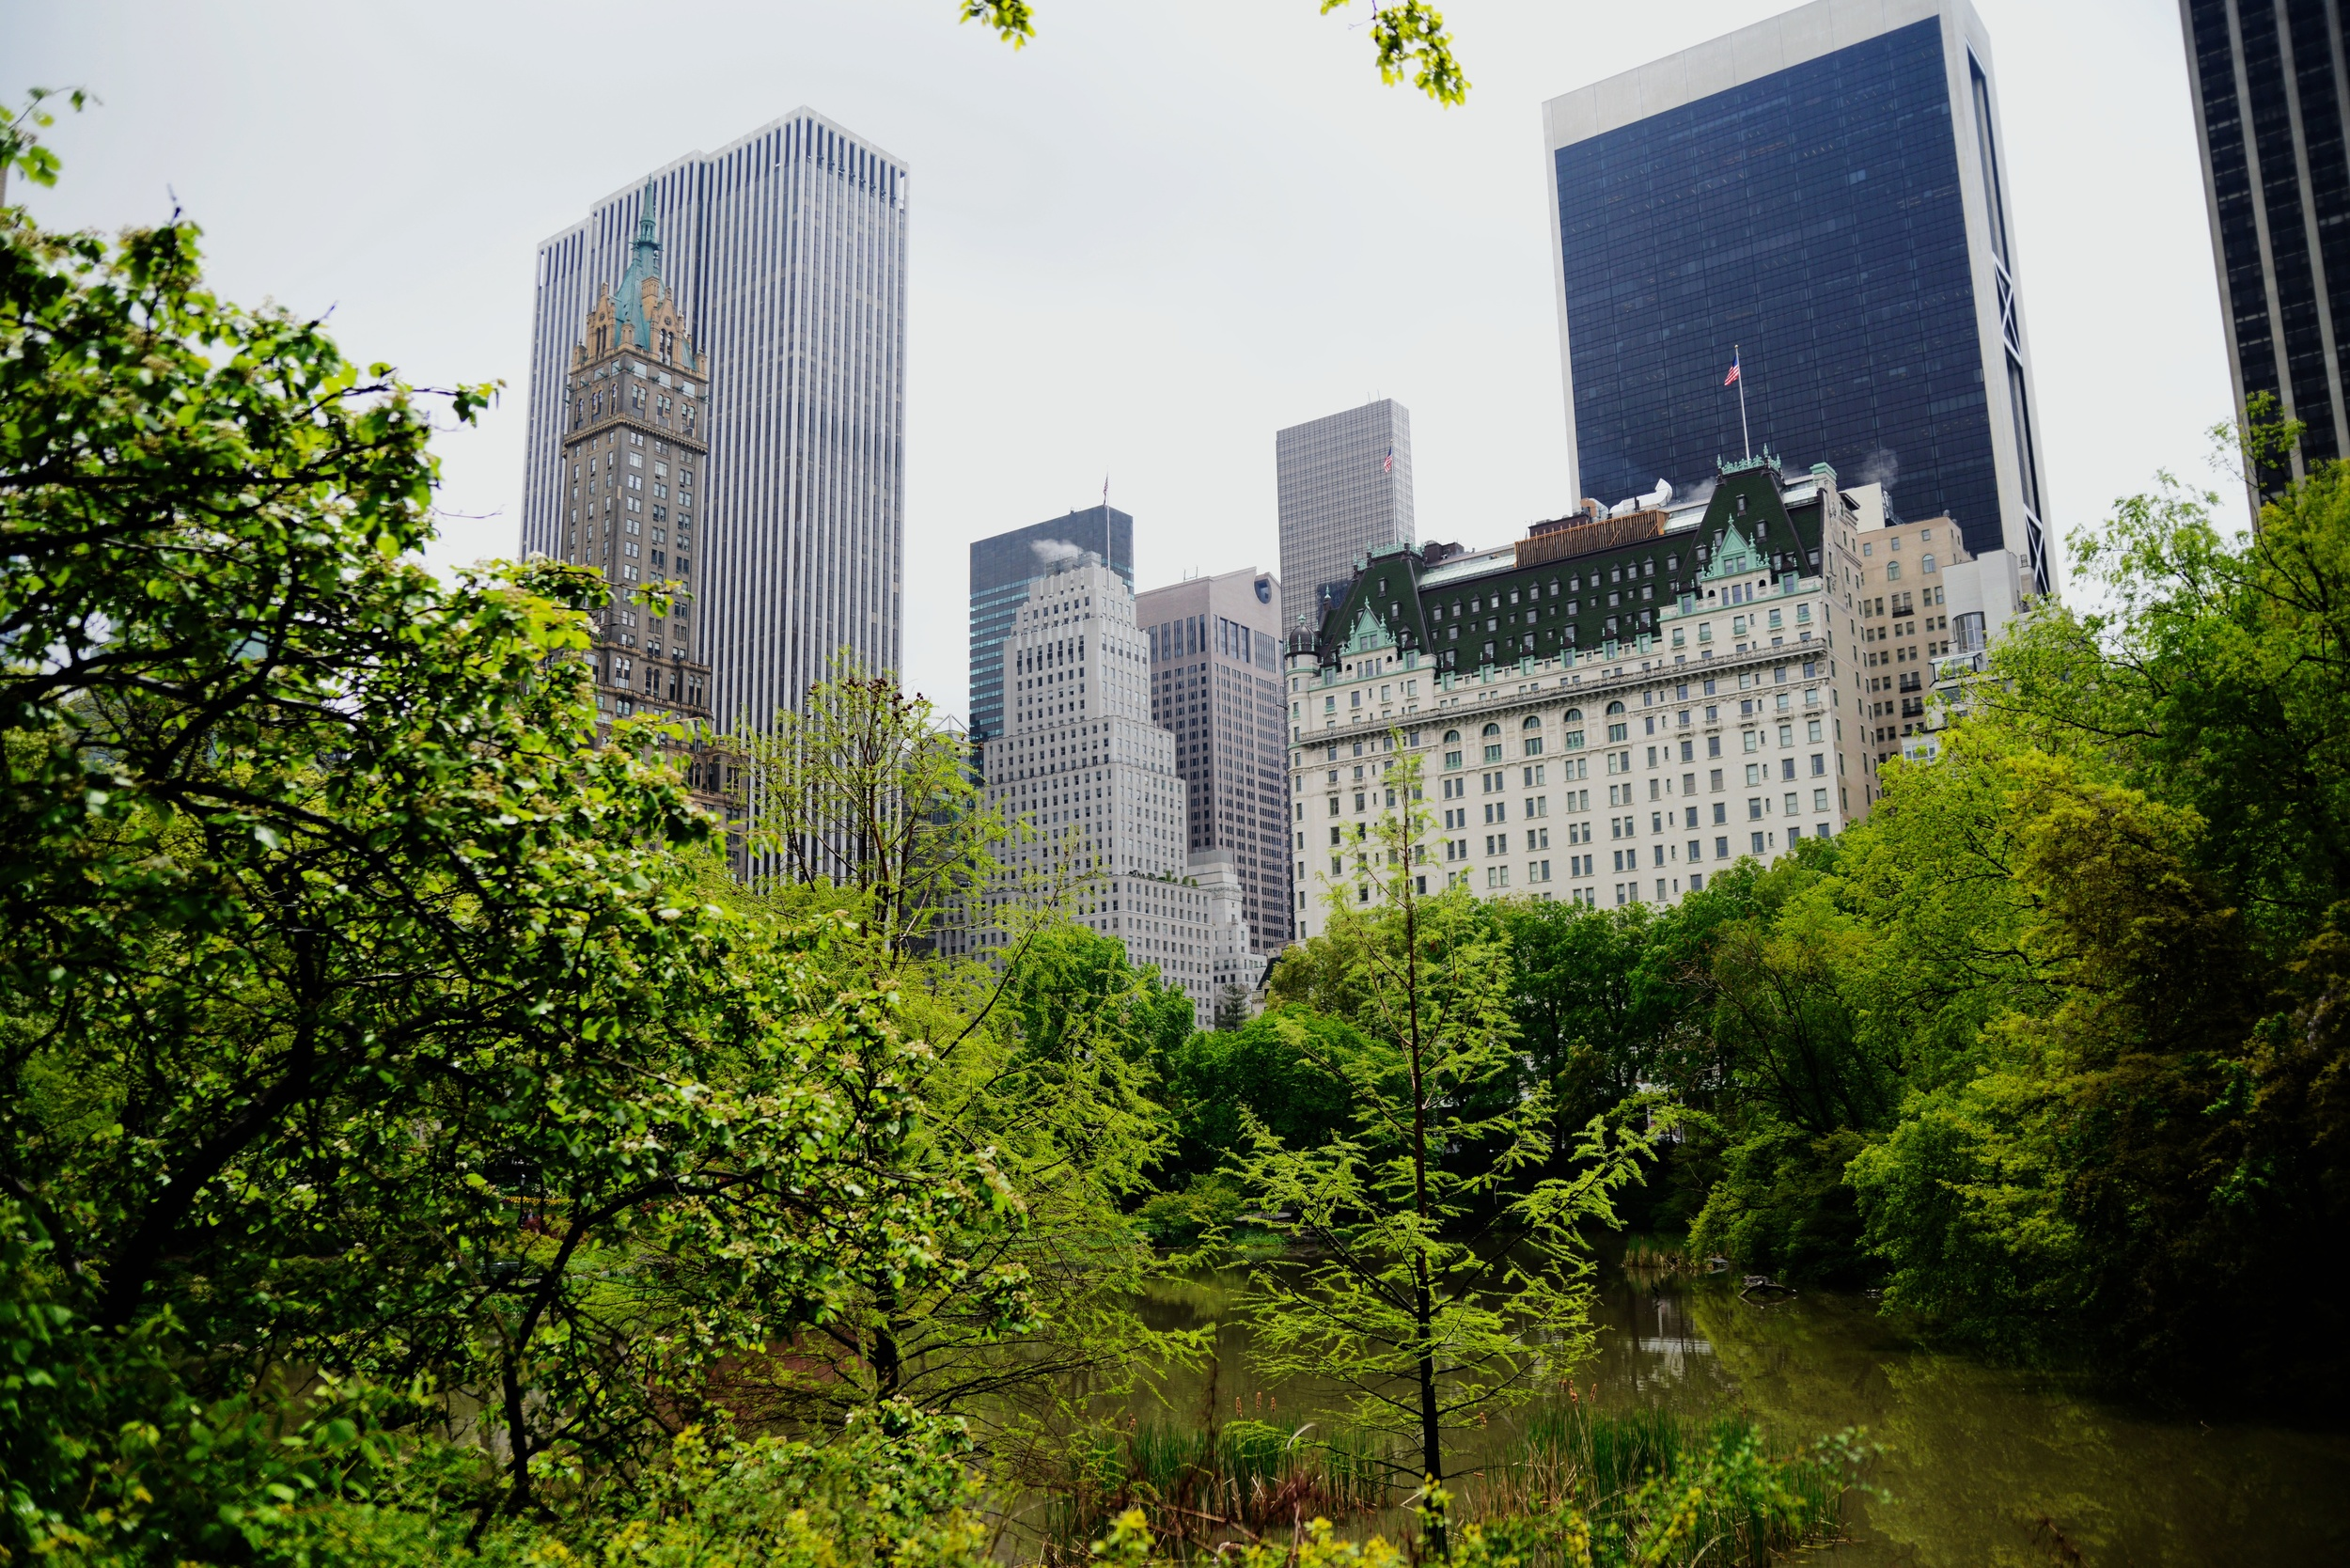 Central Park this afternoon